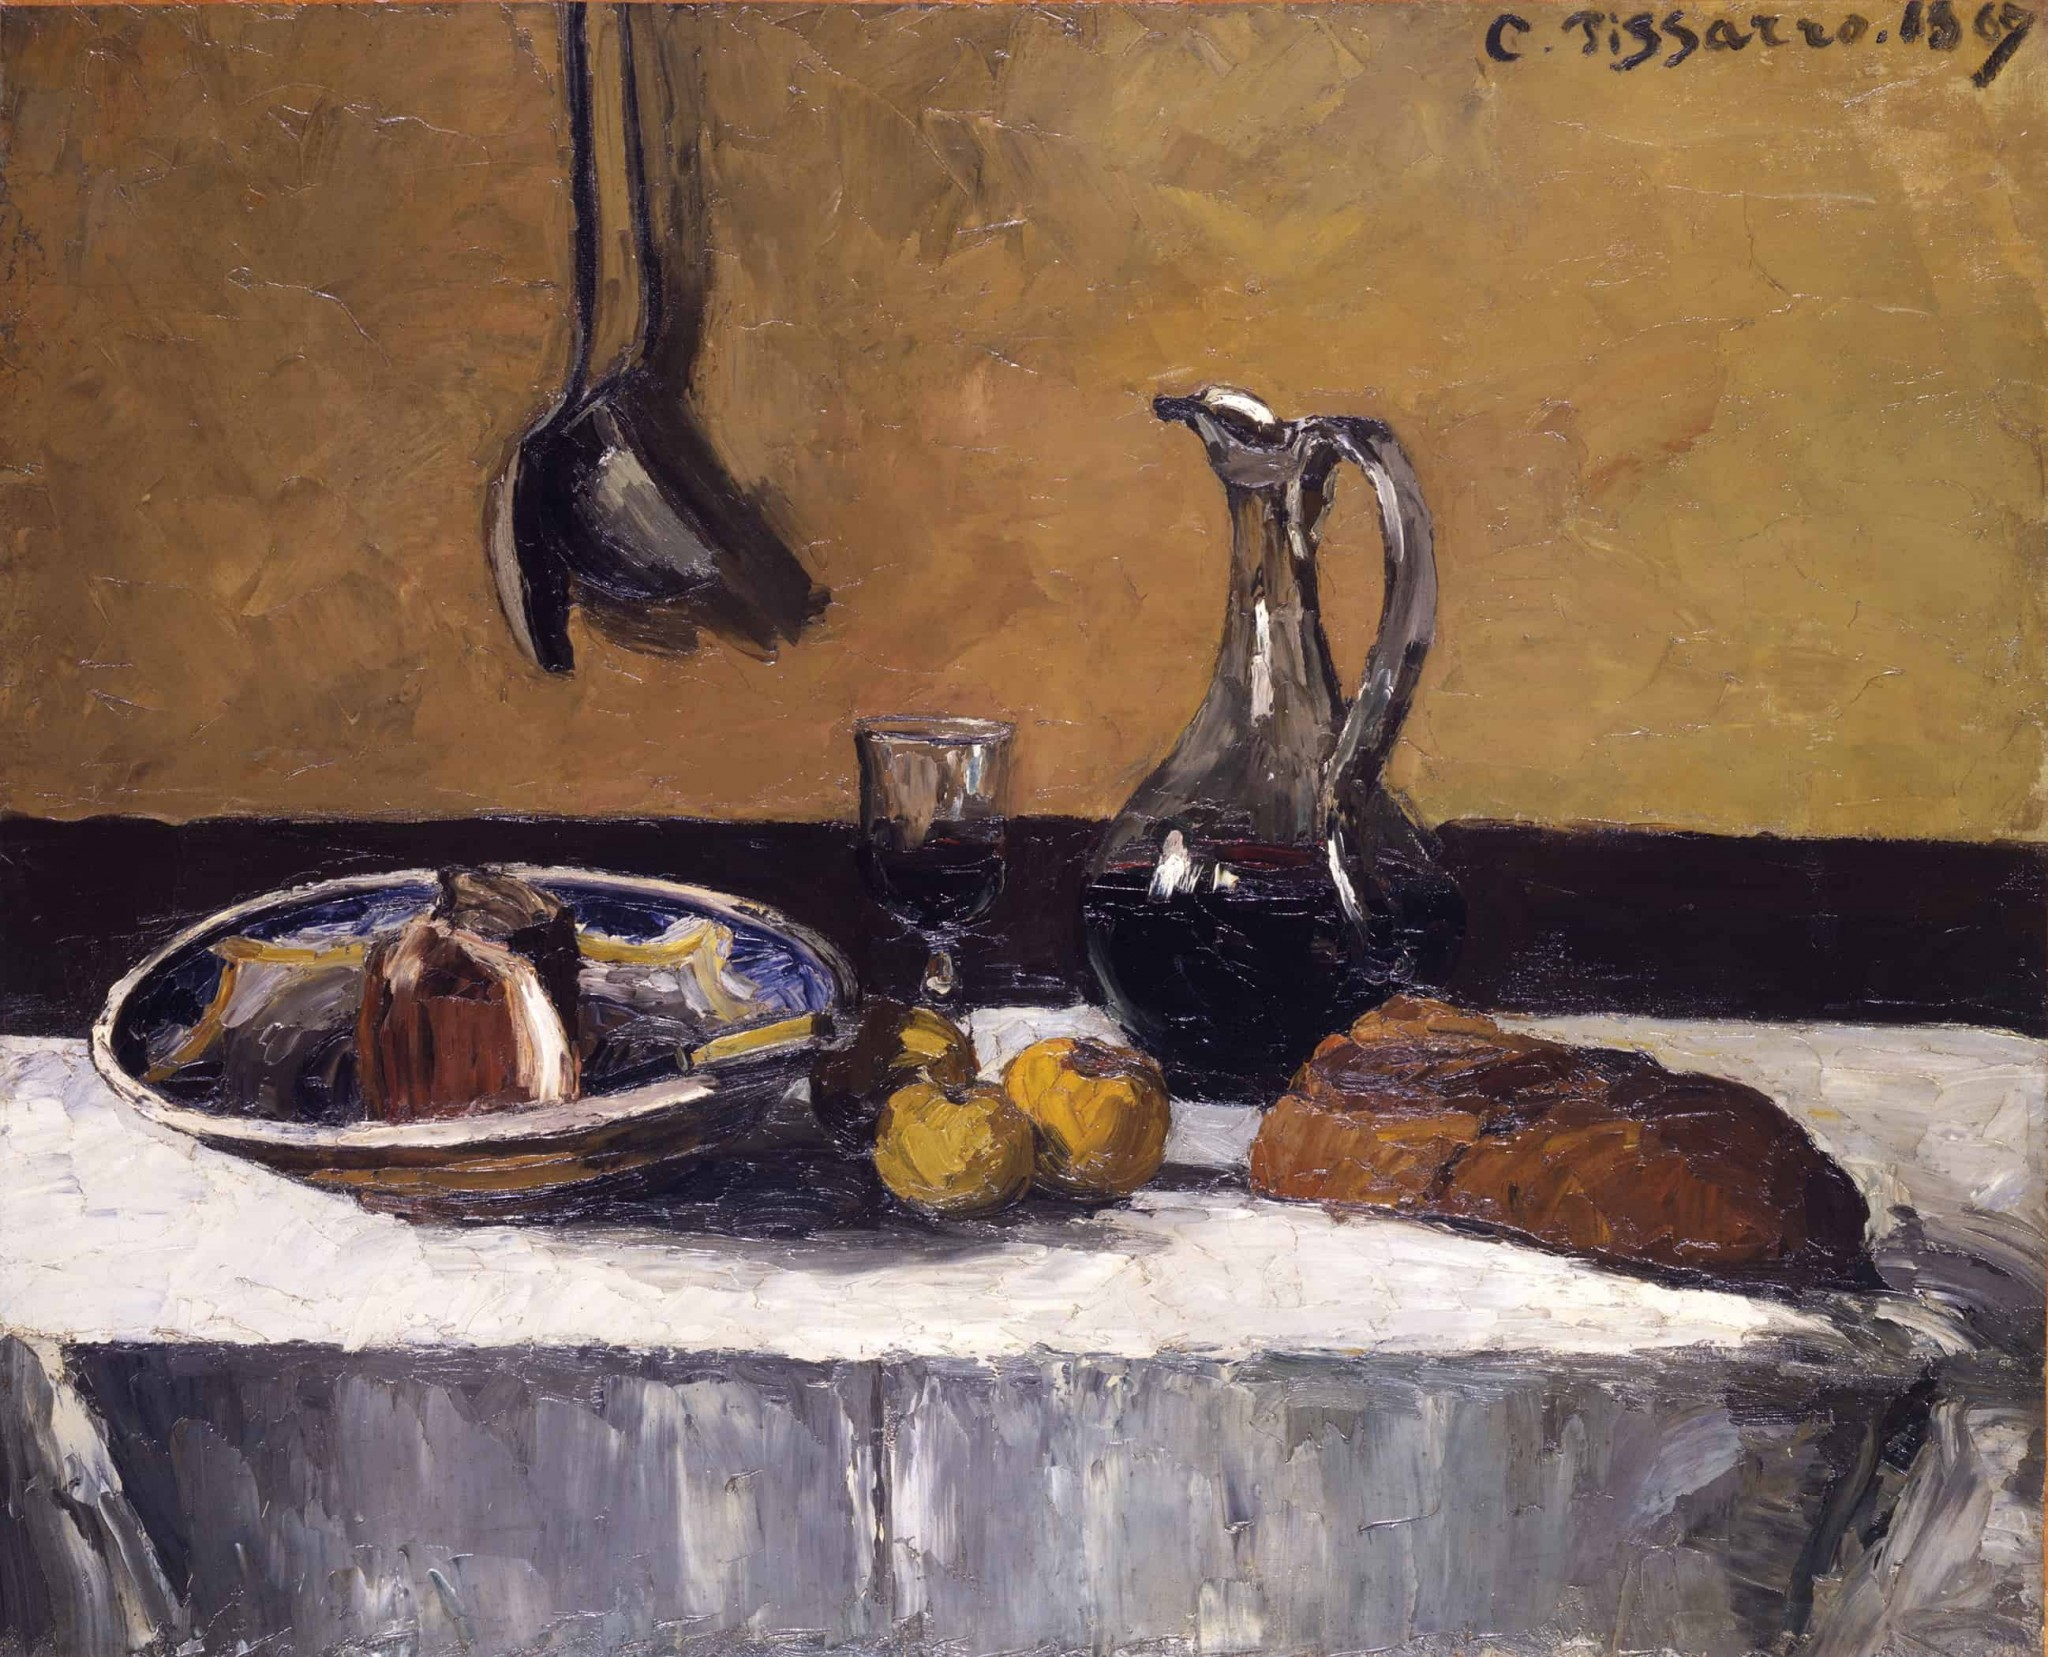 """With its solemnity and spontaneity, Camille Pissarro's """"Still Life of 1867"""" is among the compositions featured in the Toledo Museum of Art's upcoming one-gallery focus exhibition, """"One Each: Still Lifes by Pissarro, Cézanne, Manet & Friends."""" (Photo courtesy of the Toledo Museum of Art)"""